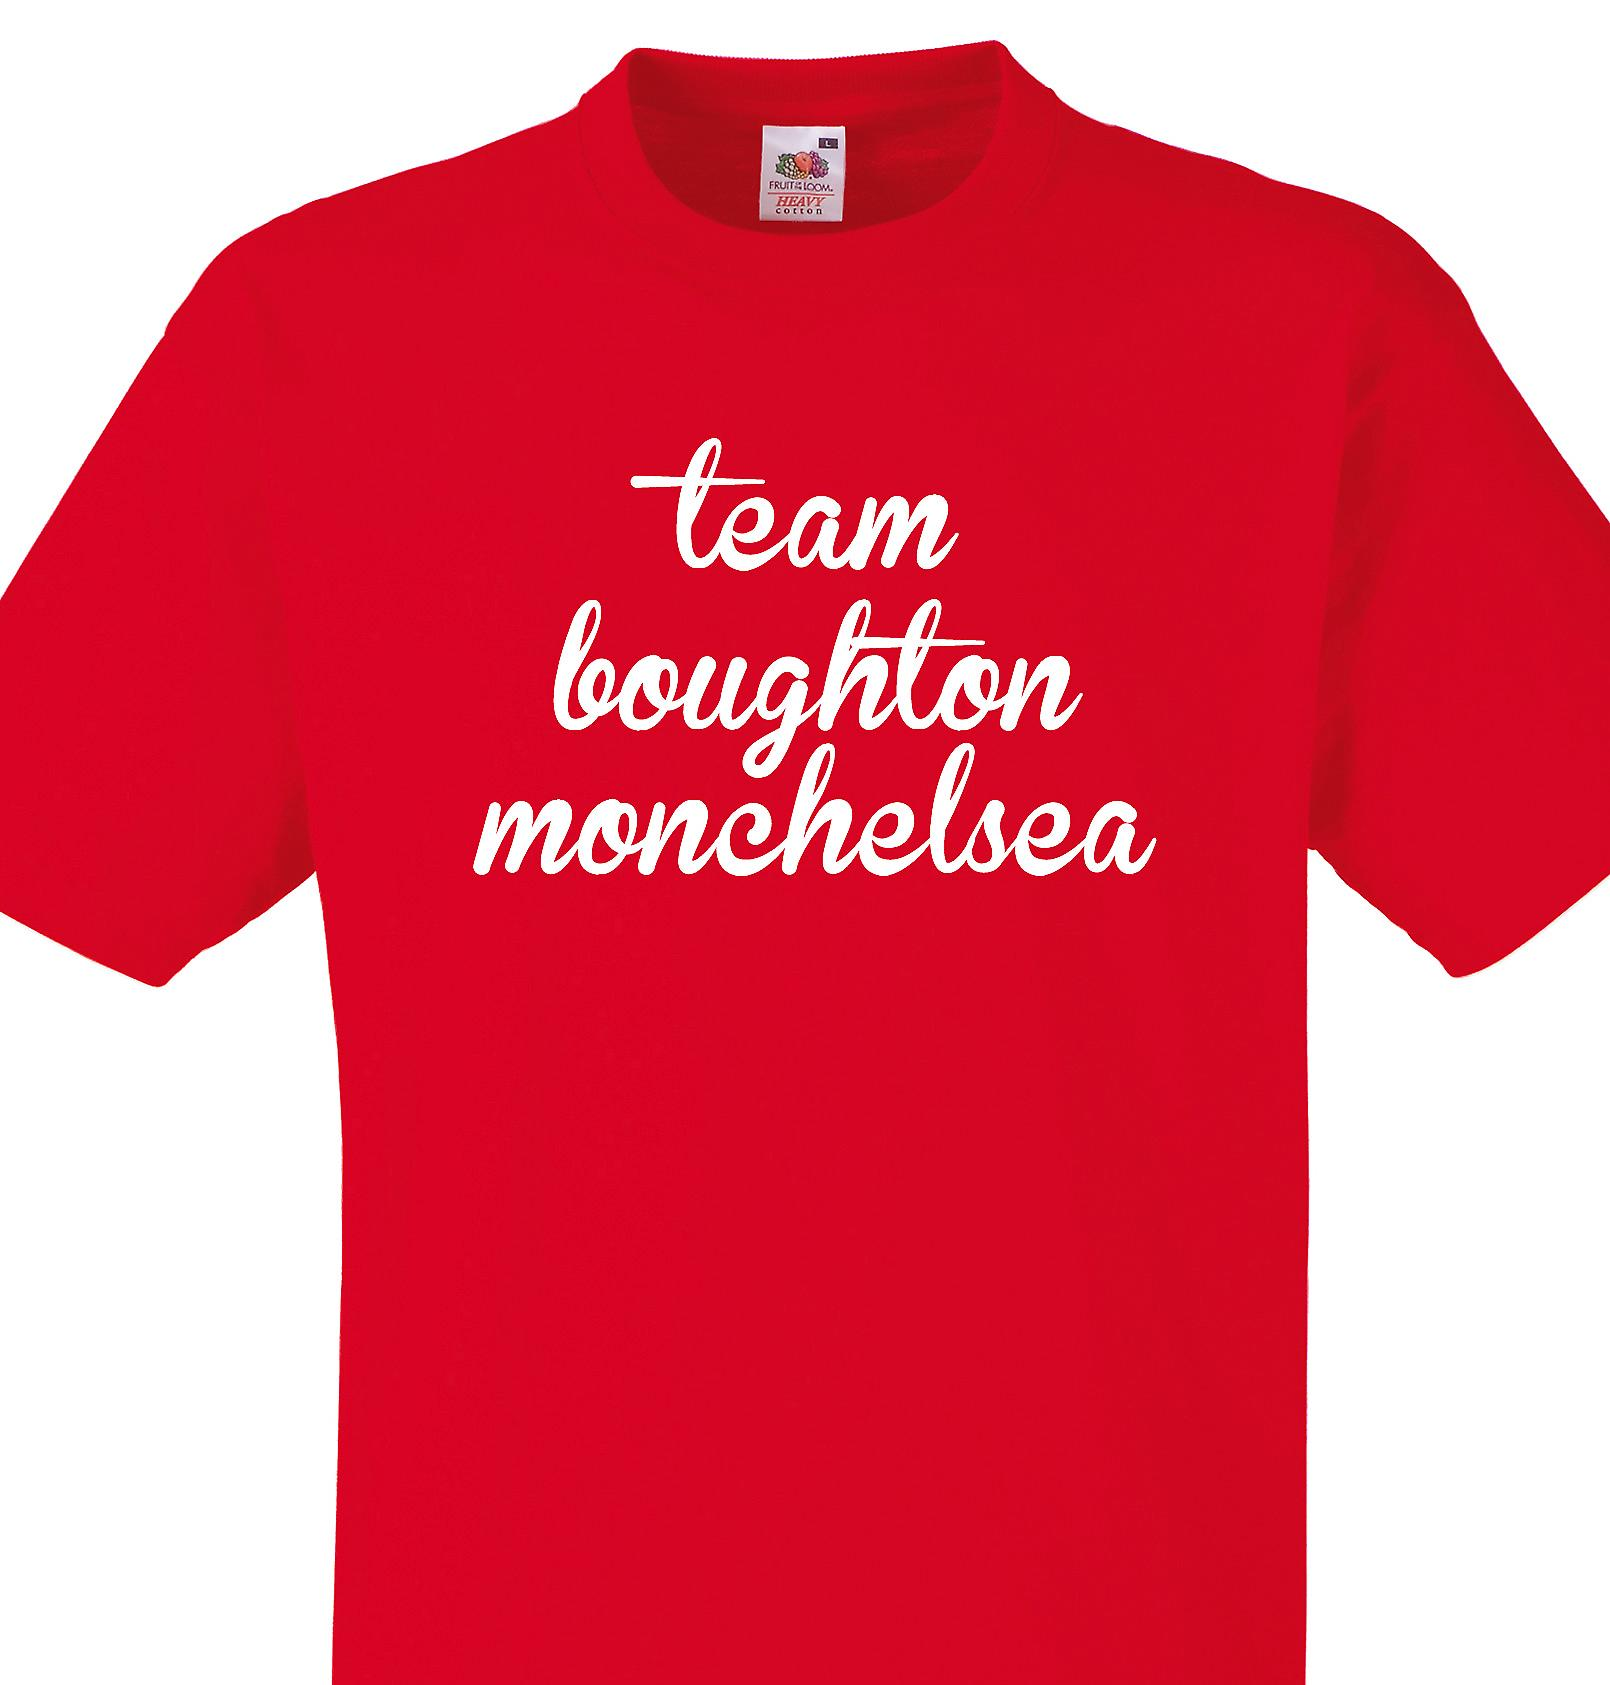 Team Boughton monchelsea Red T shirt